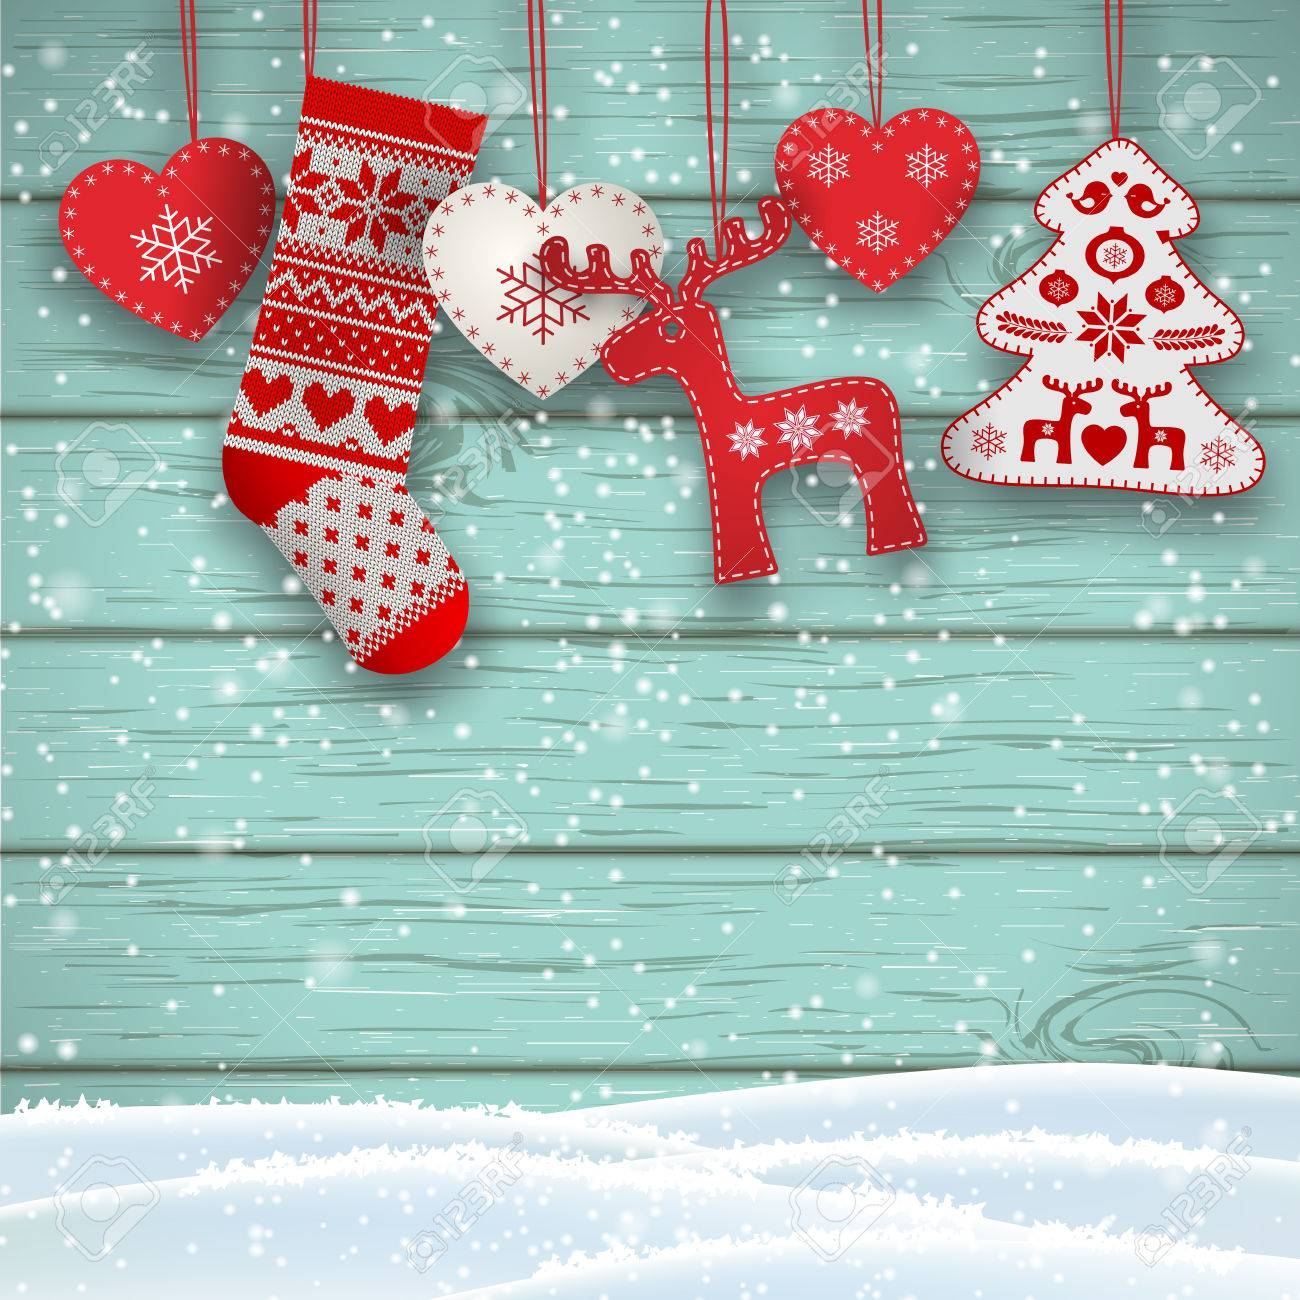 Hanging Christmas Decorations Wall.Group Of Hanging Christmas Decorations In Scandinavian Style